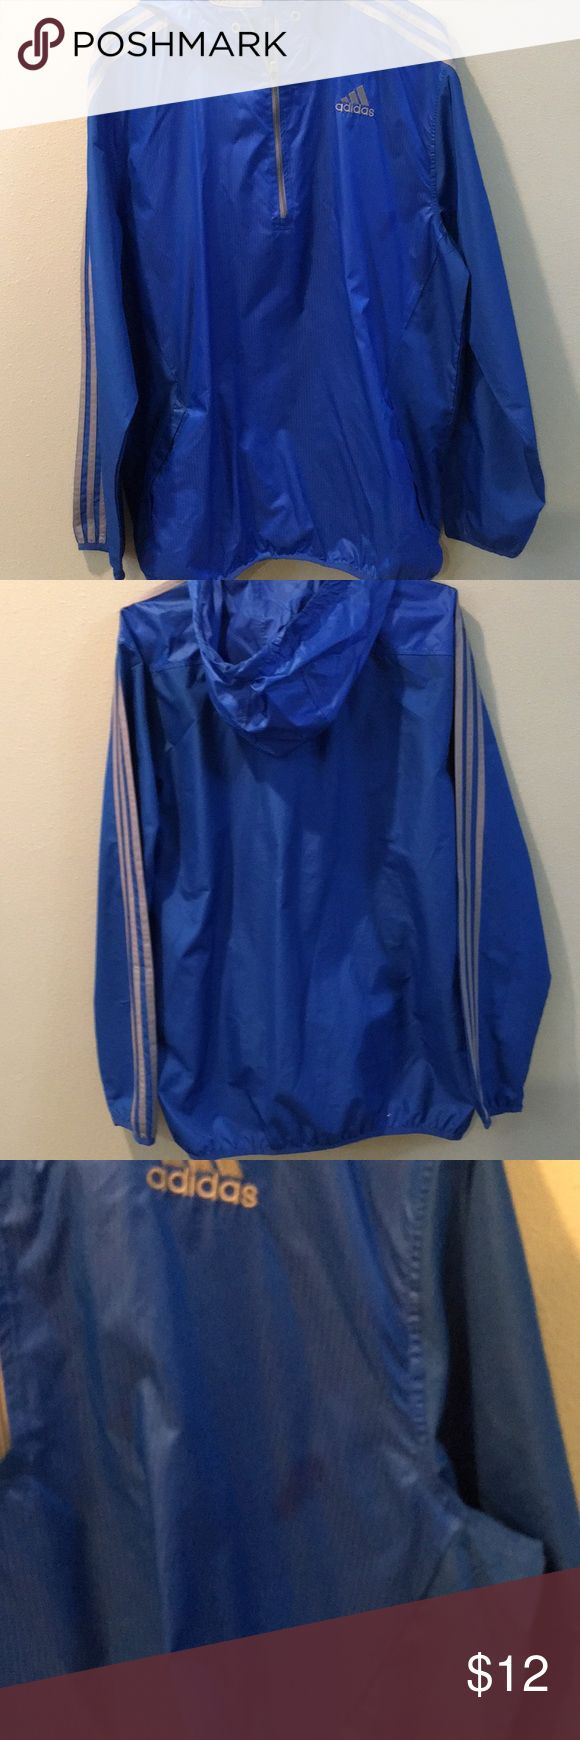 Lightweight Adidas Jacket Men's nylon adidas jacket. Unlined. Small stain shown in pictures. Barely noticeable when wearing. adidas Jackets & Coats Windbreakers